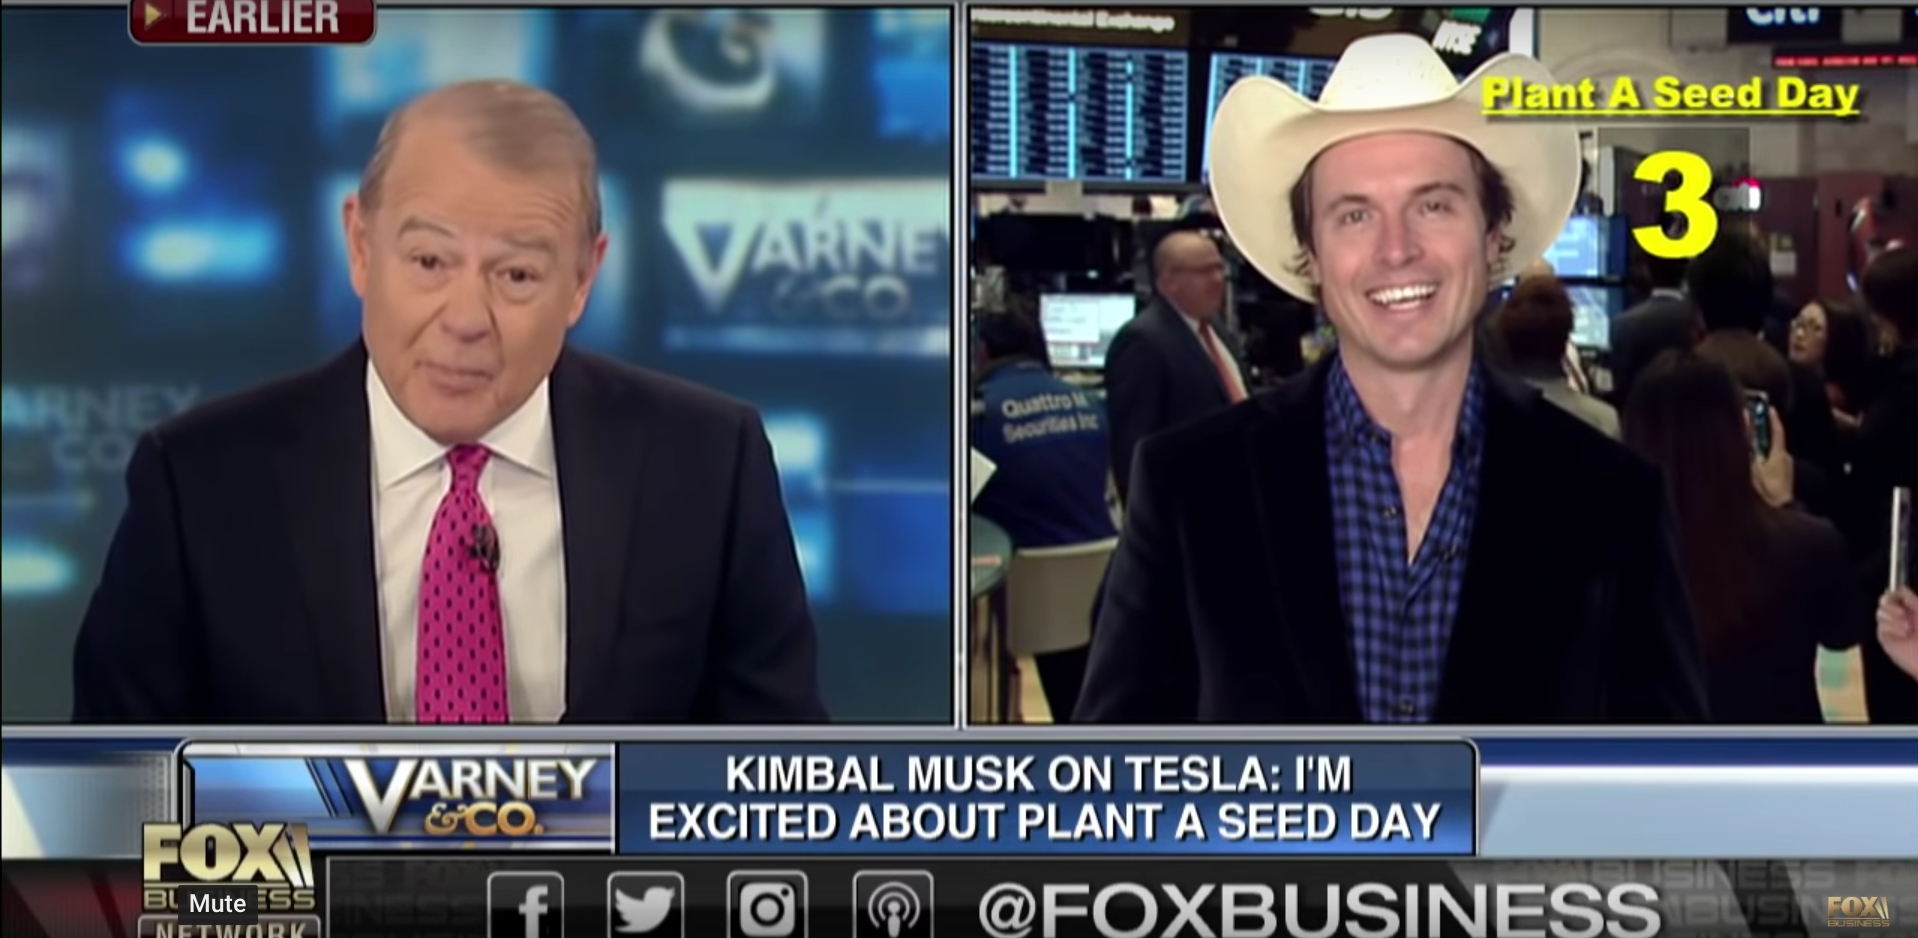 kimbal-musk-plant-a-seed-day-fox